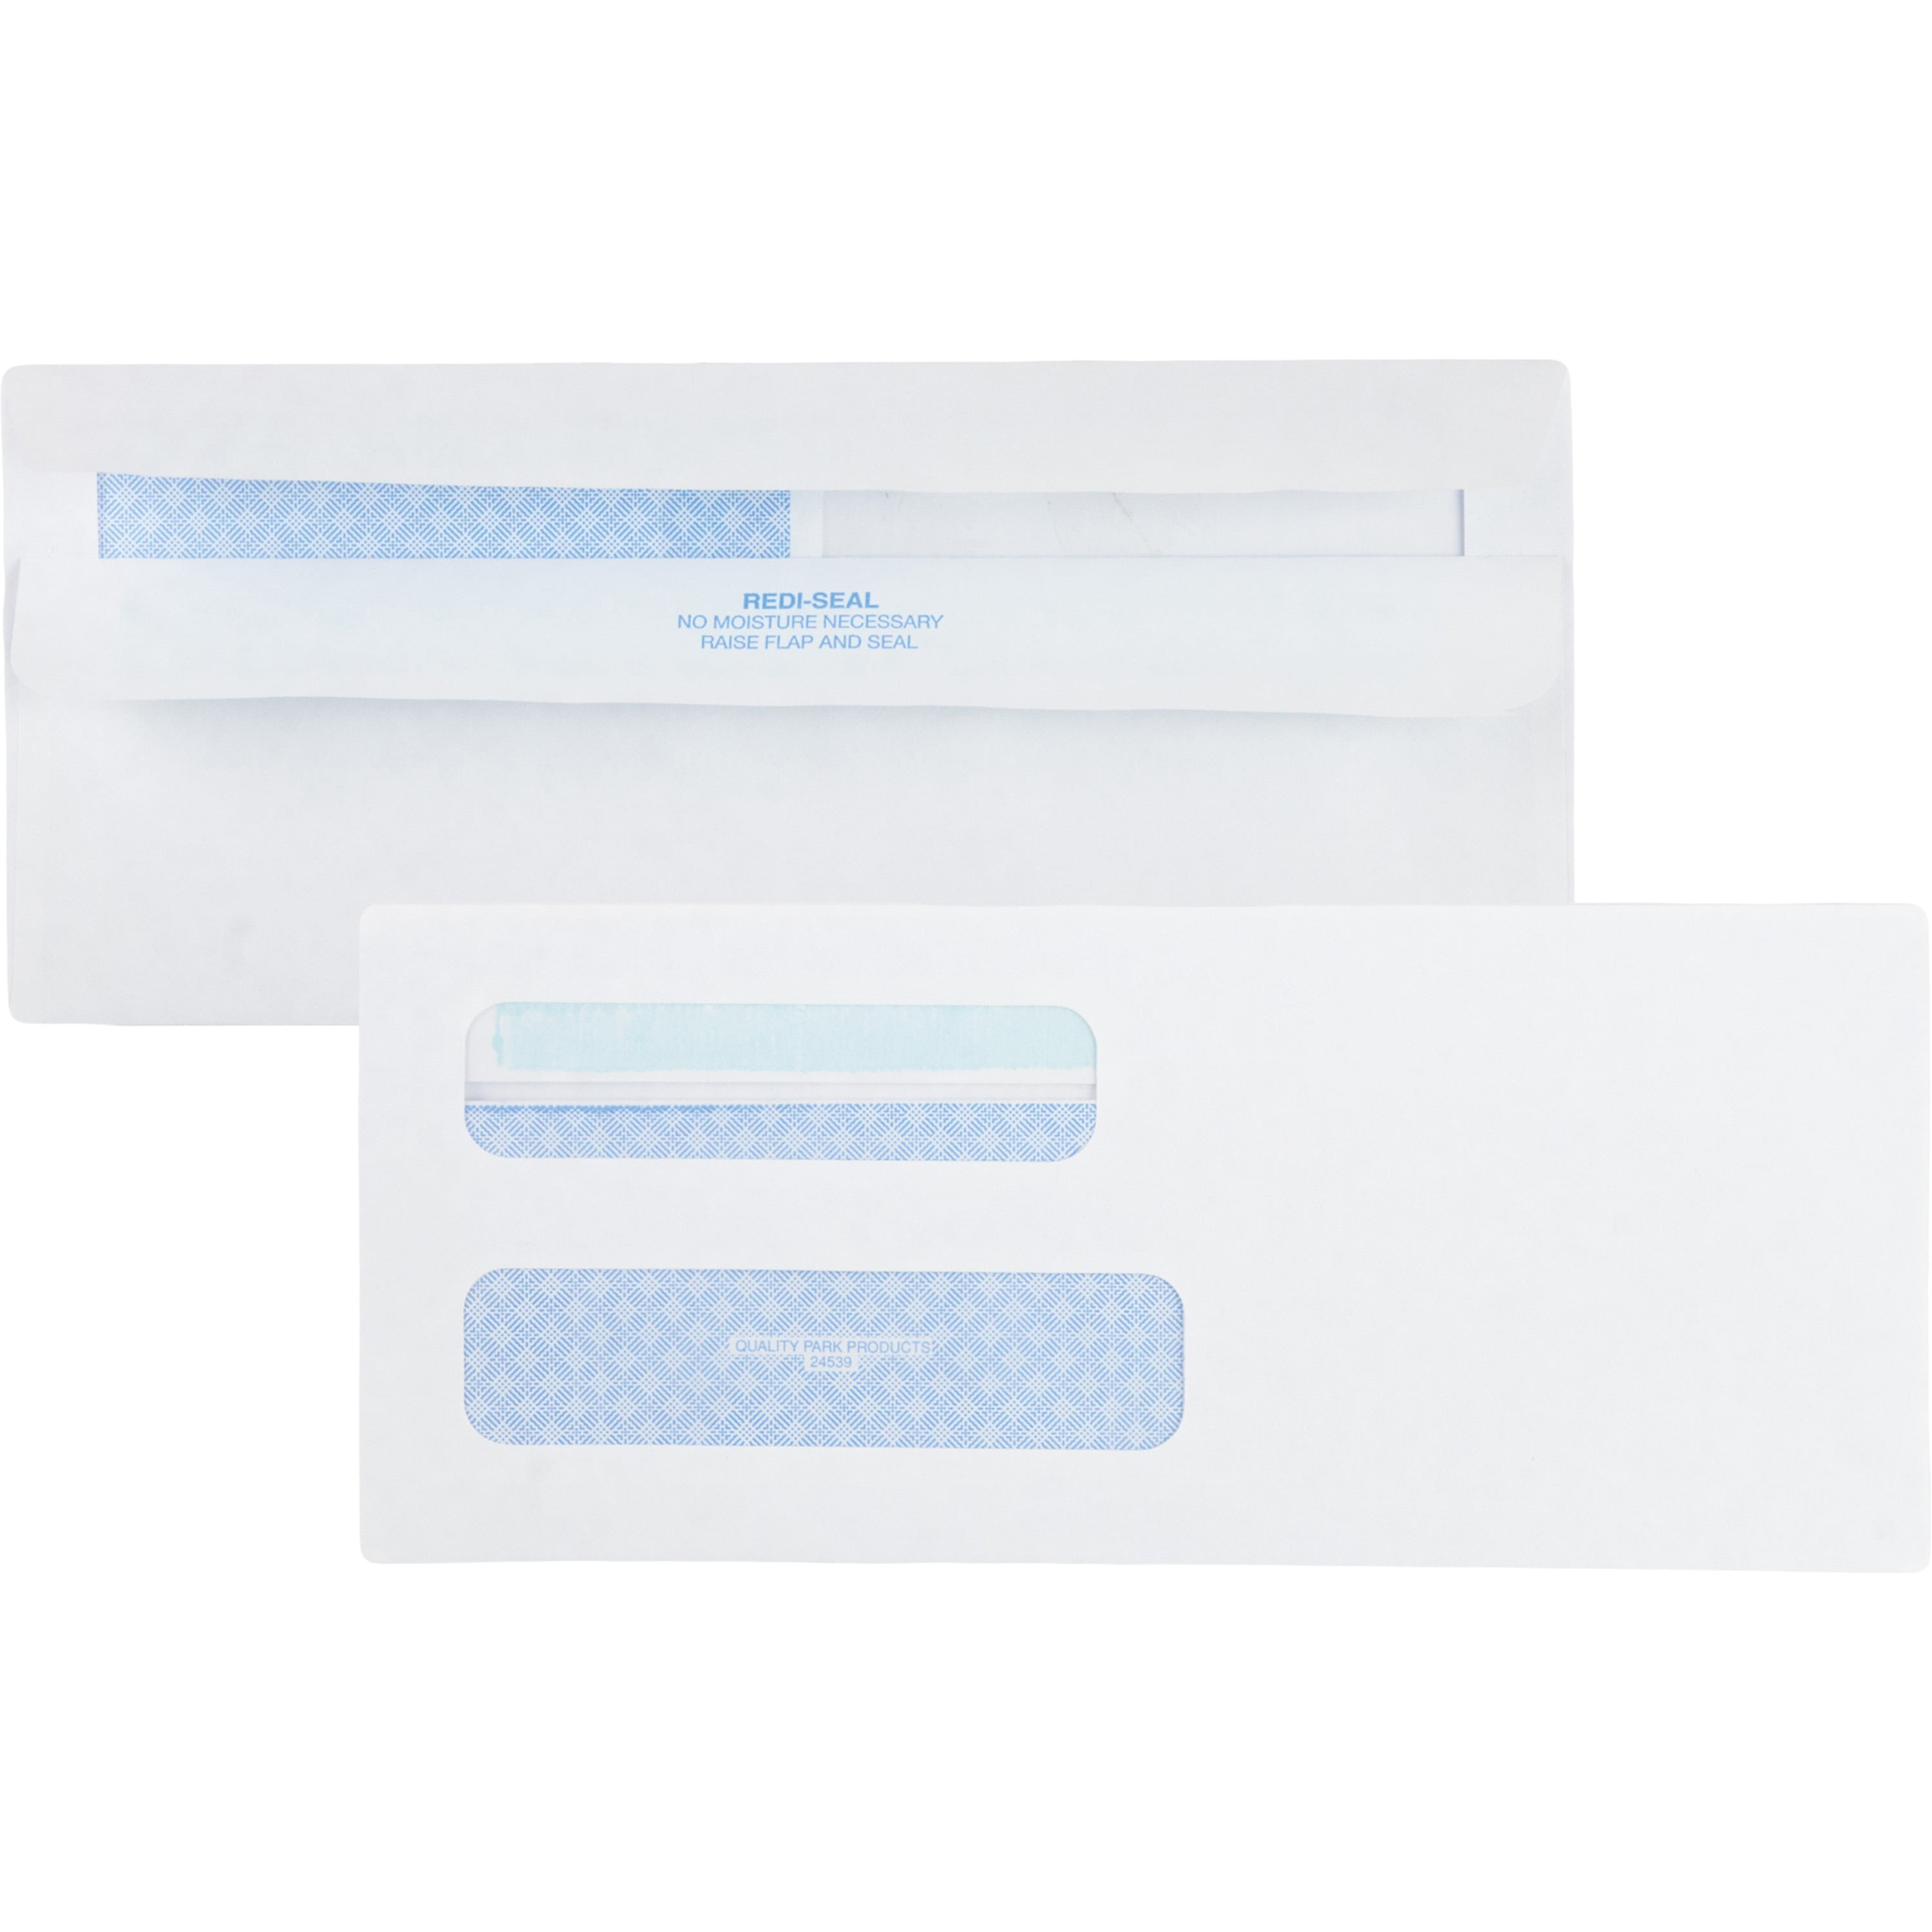 CENTURION RS 8001 6 x 9 White Envelope with Window Pack of 500